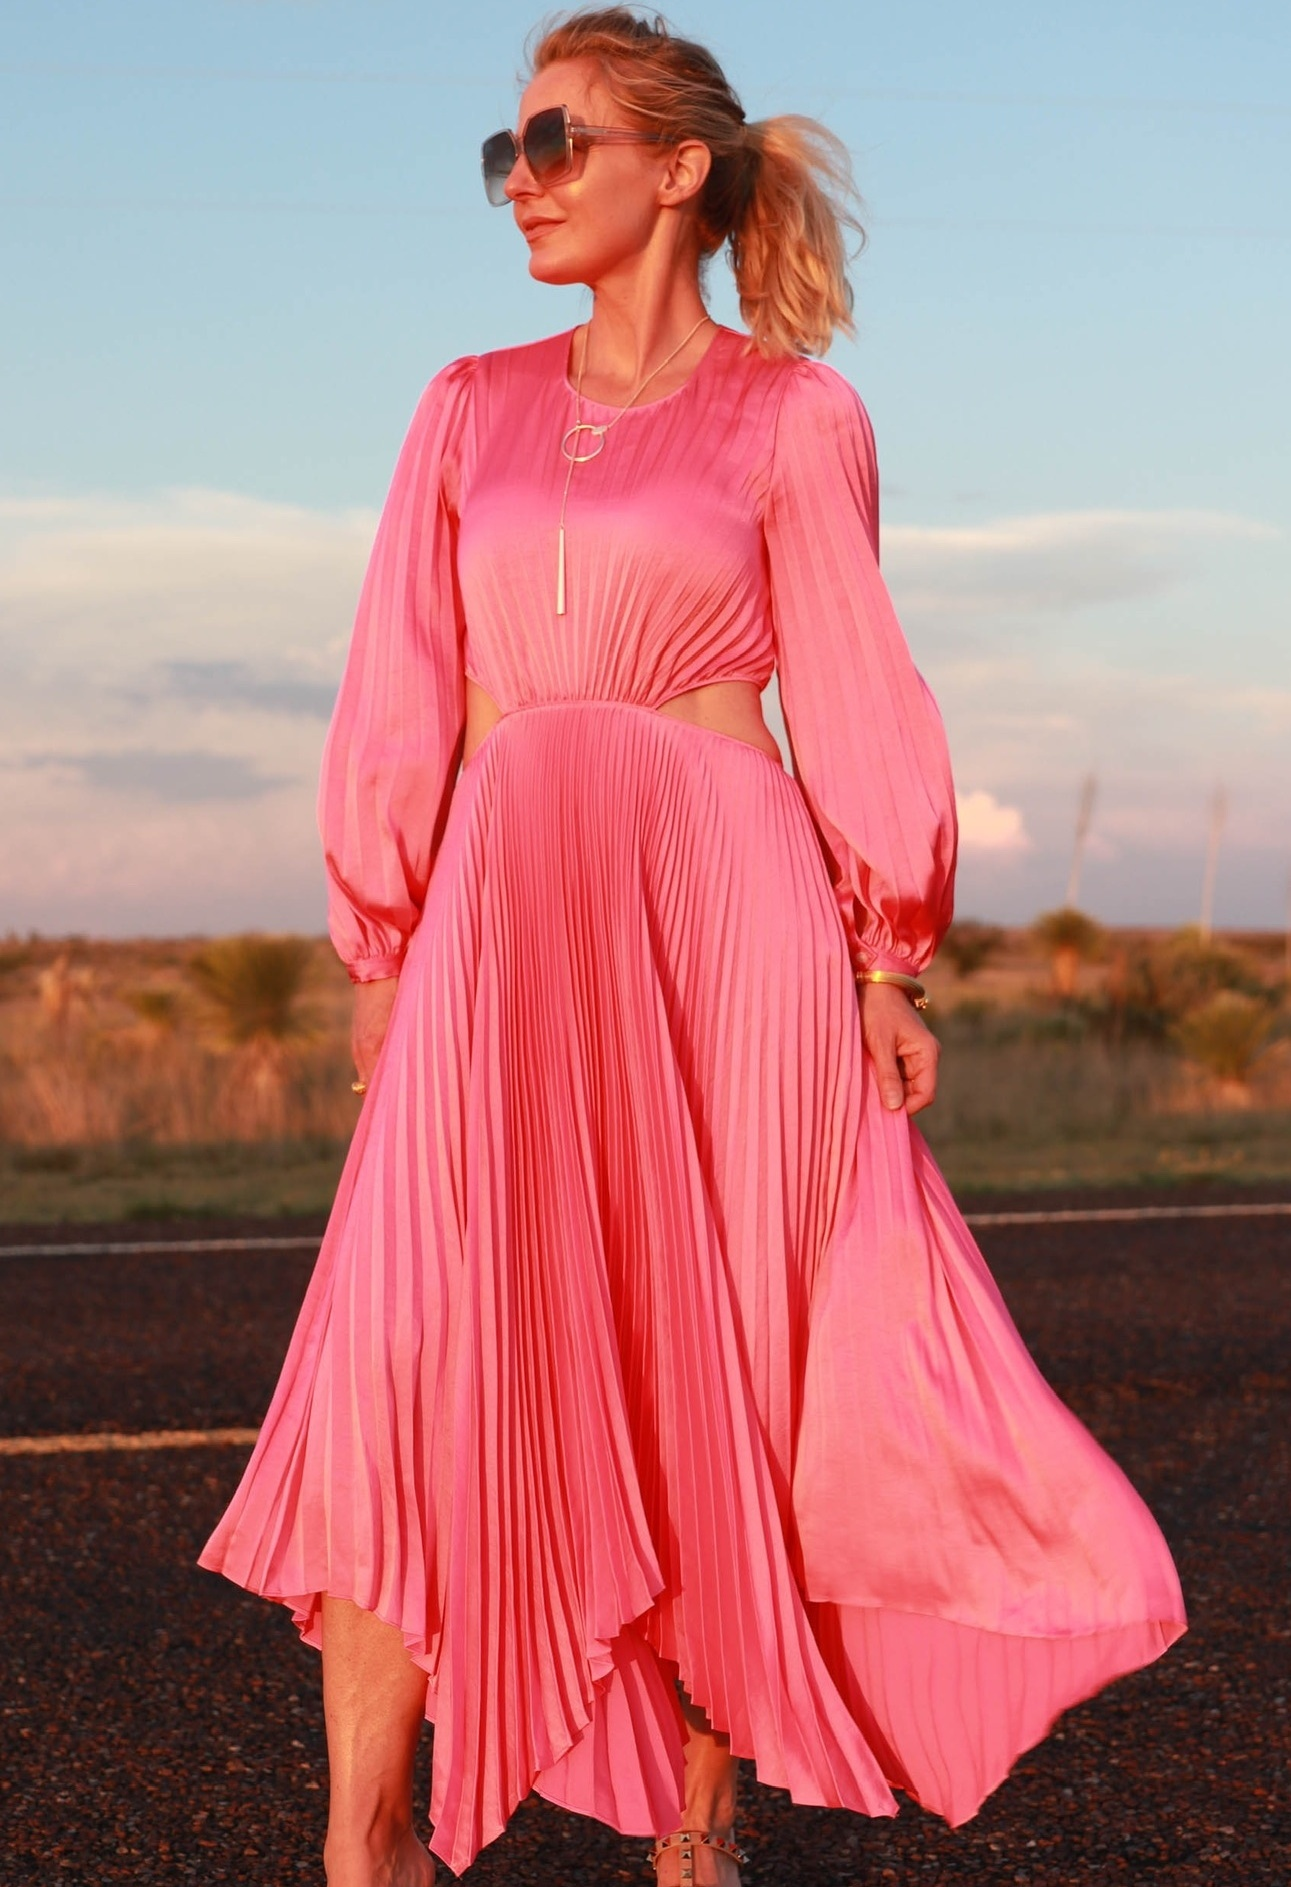 ALC pink pleated dress midi length with cutouts and sleeves on fashion over 40 blogger Erin Busbee